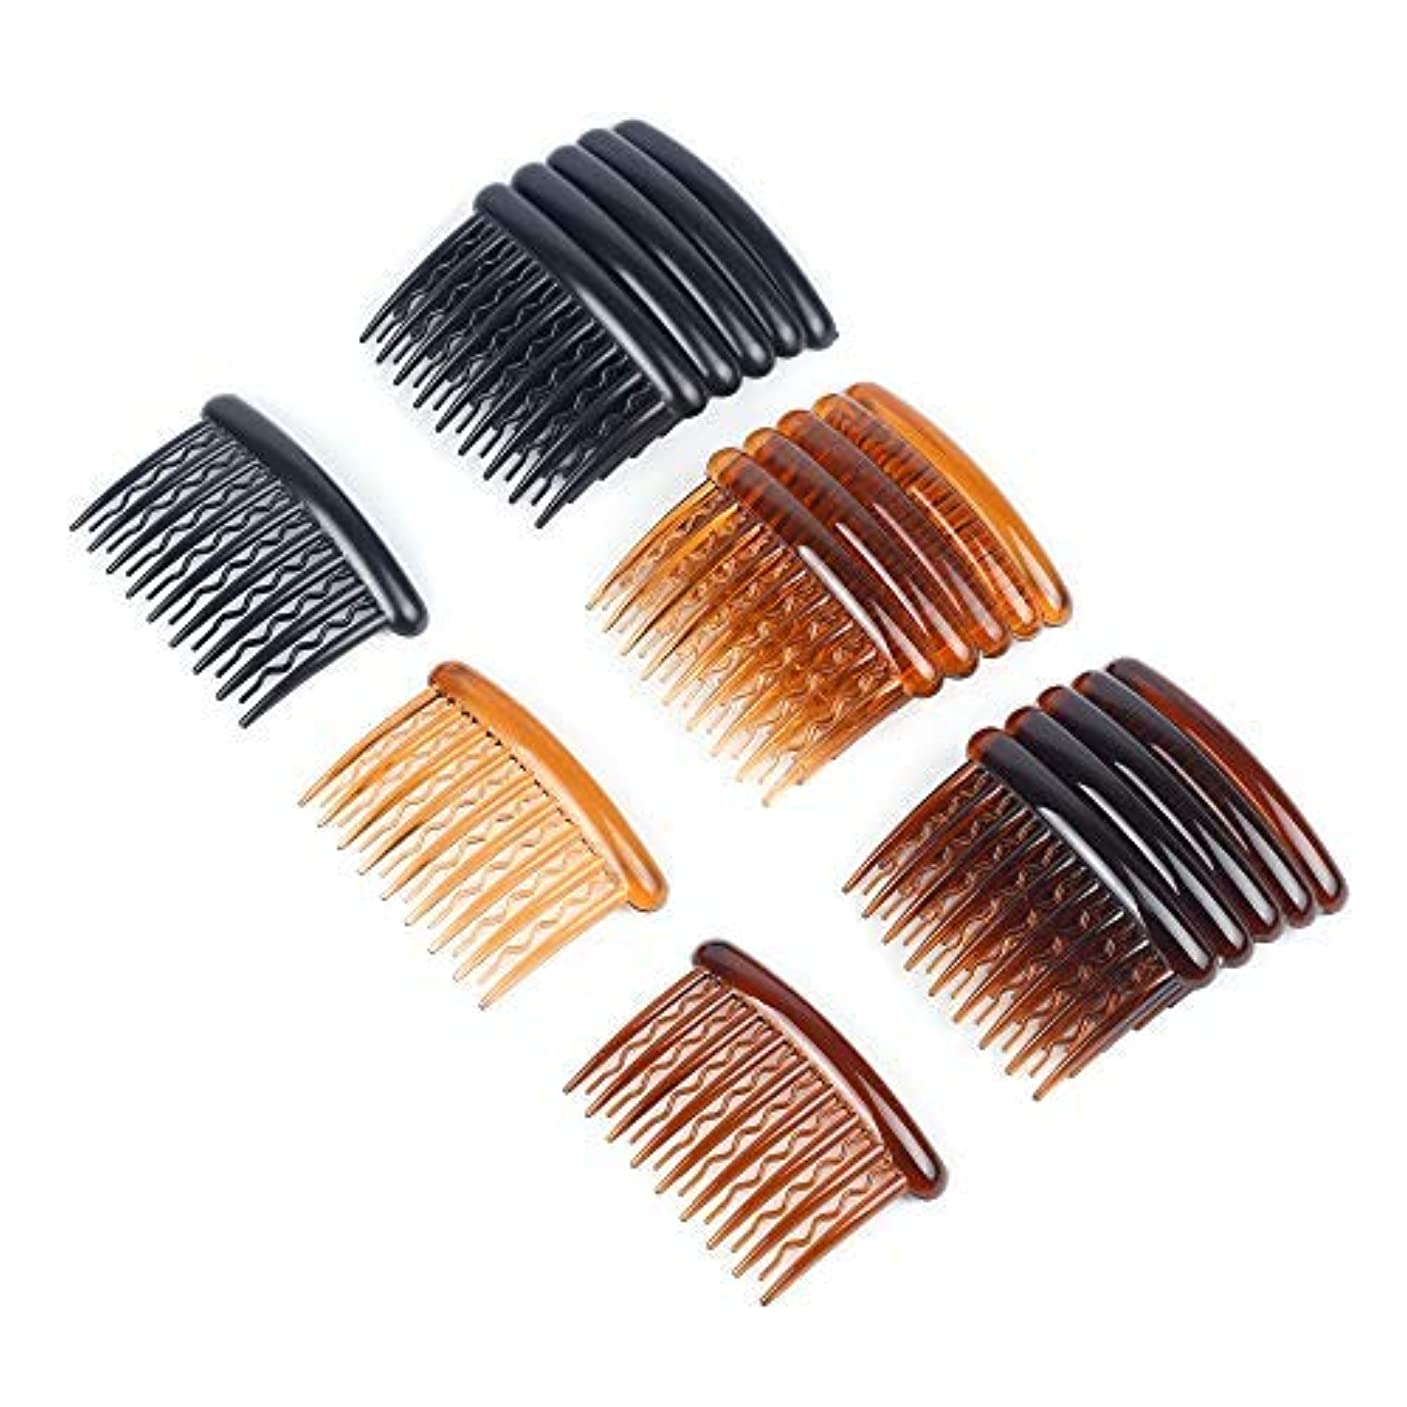 一時停止復活させる弁護人WBCBEC 18 Pieces Plastic Teeth Hair Combs Tortoise Side Comb Hair Accessories for Fine Hair [並行輸入品]